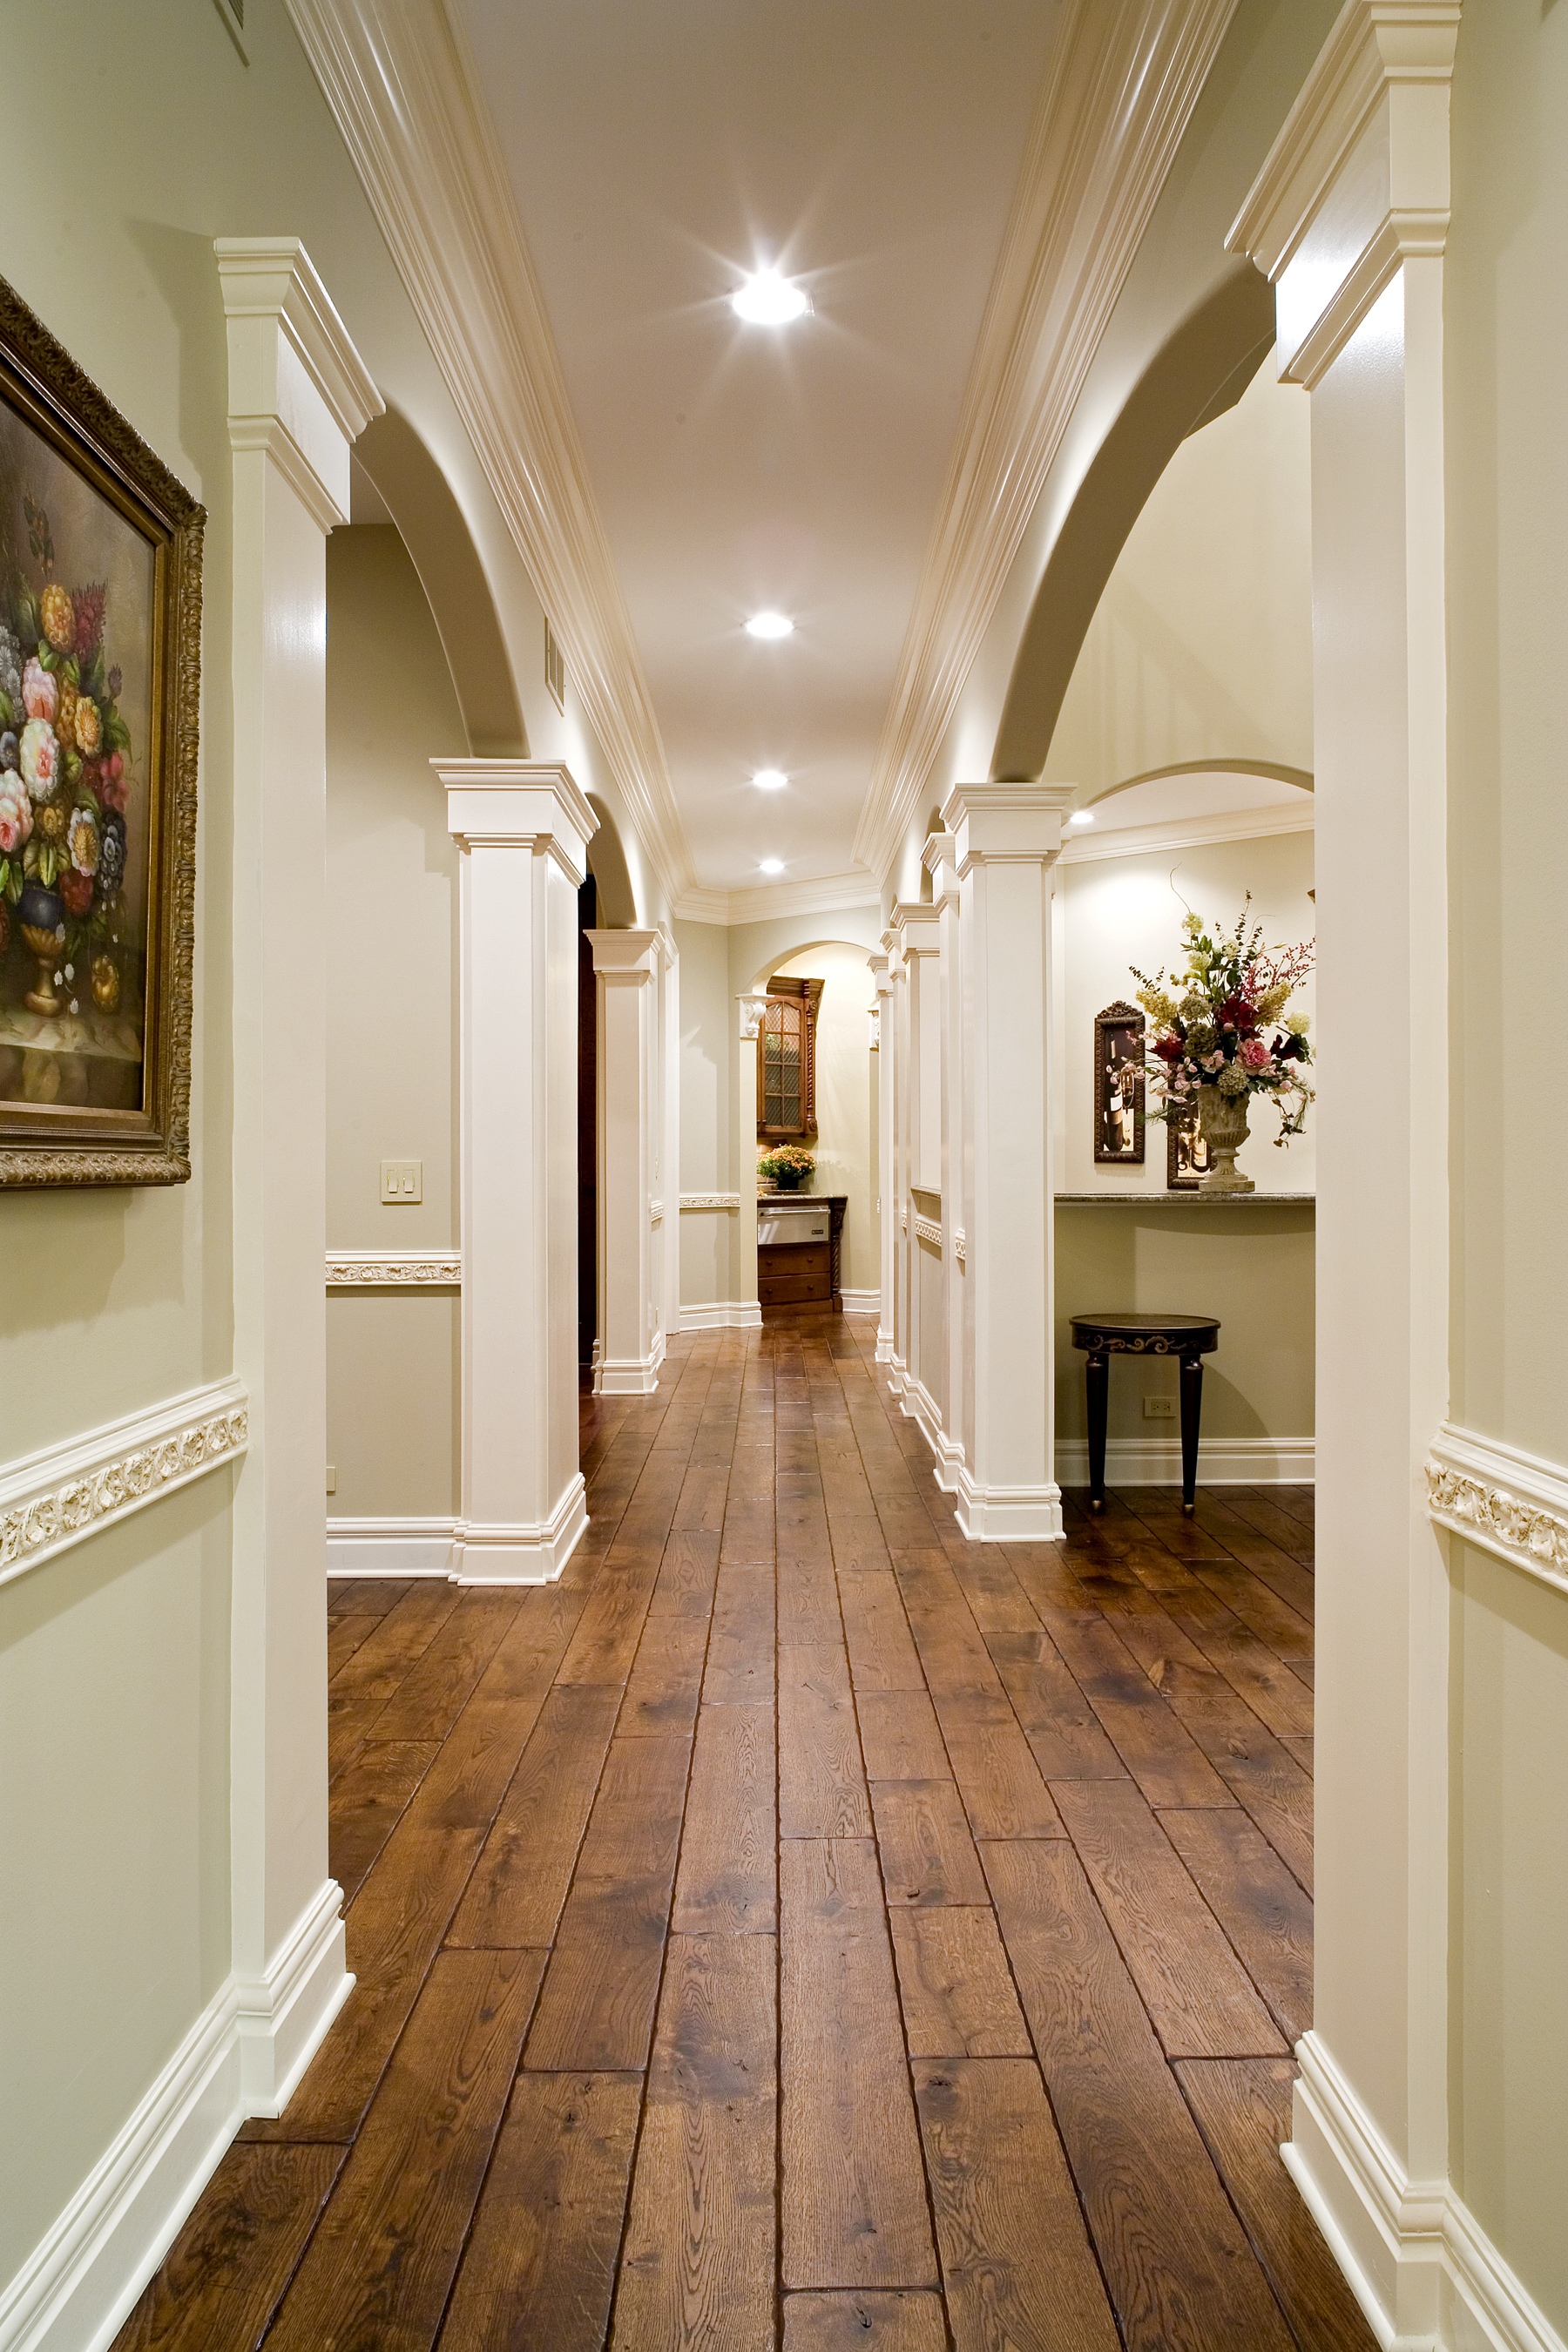 Wide Plank Oak Flooring with Medium Distressed and Hand Scrapped. Carved Chair Rail in this Naperville IL. Luxury Home